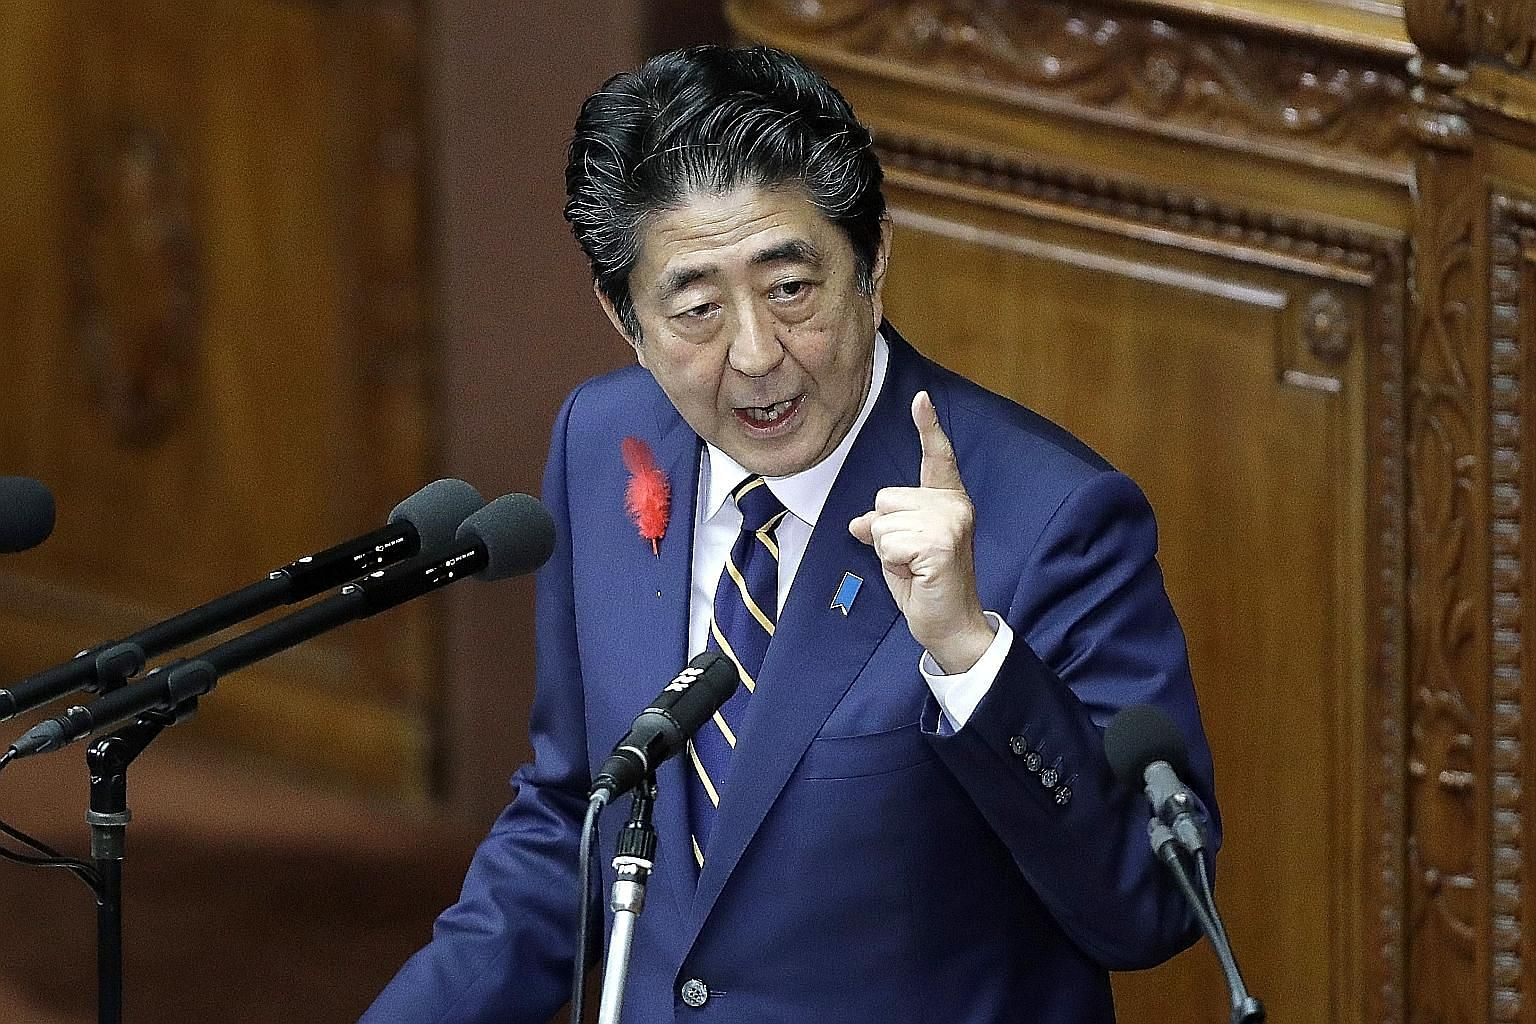 Japanese Prime Minister Shinzo Abe, speaking at an extraordinary session of Parliament yesterday, said that achieving economic growth remains his administration's top priority.